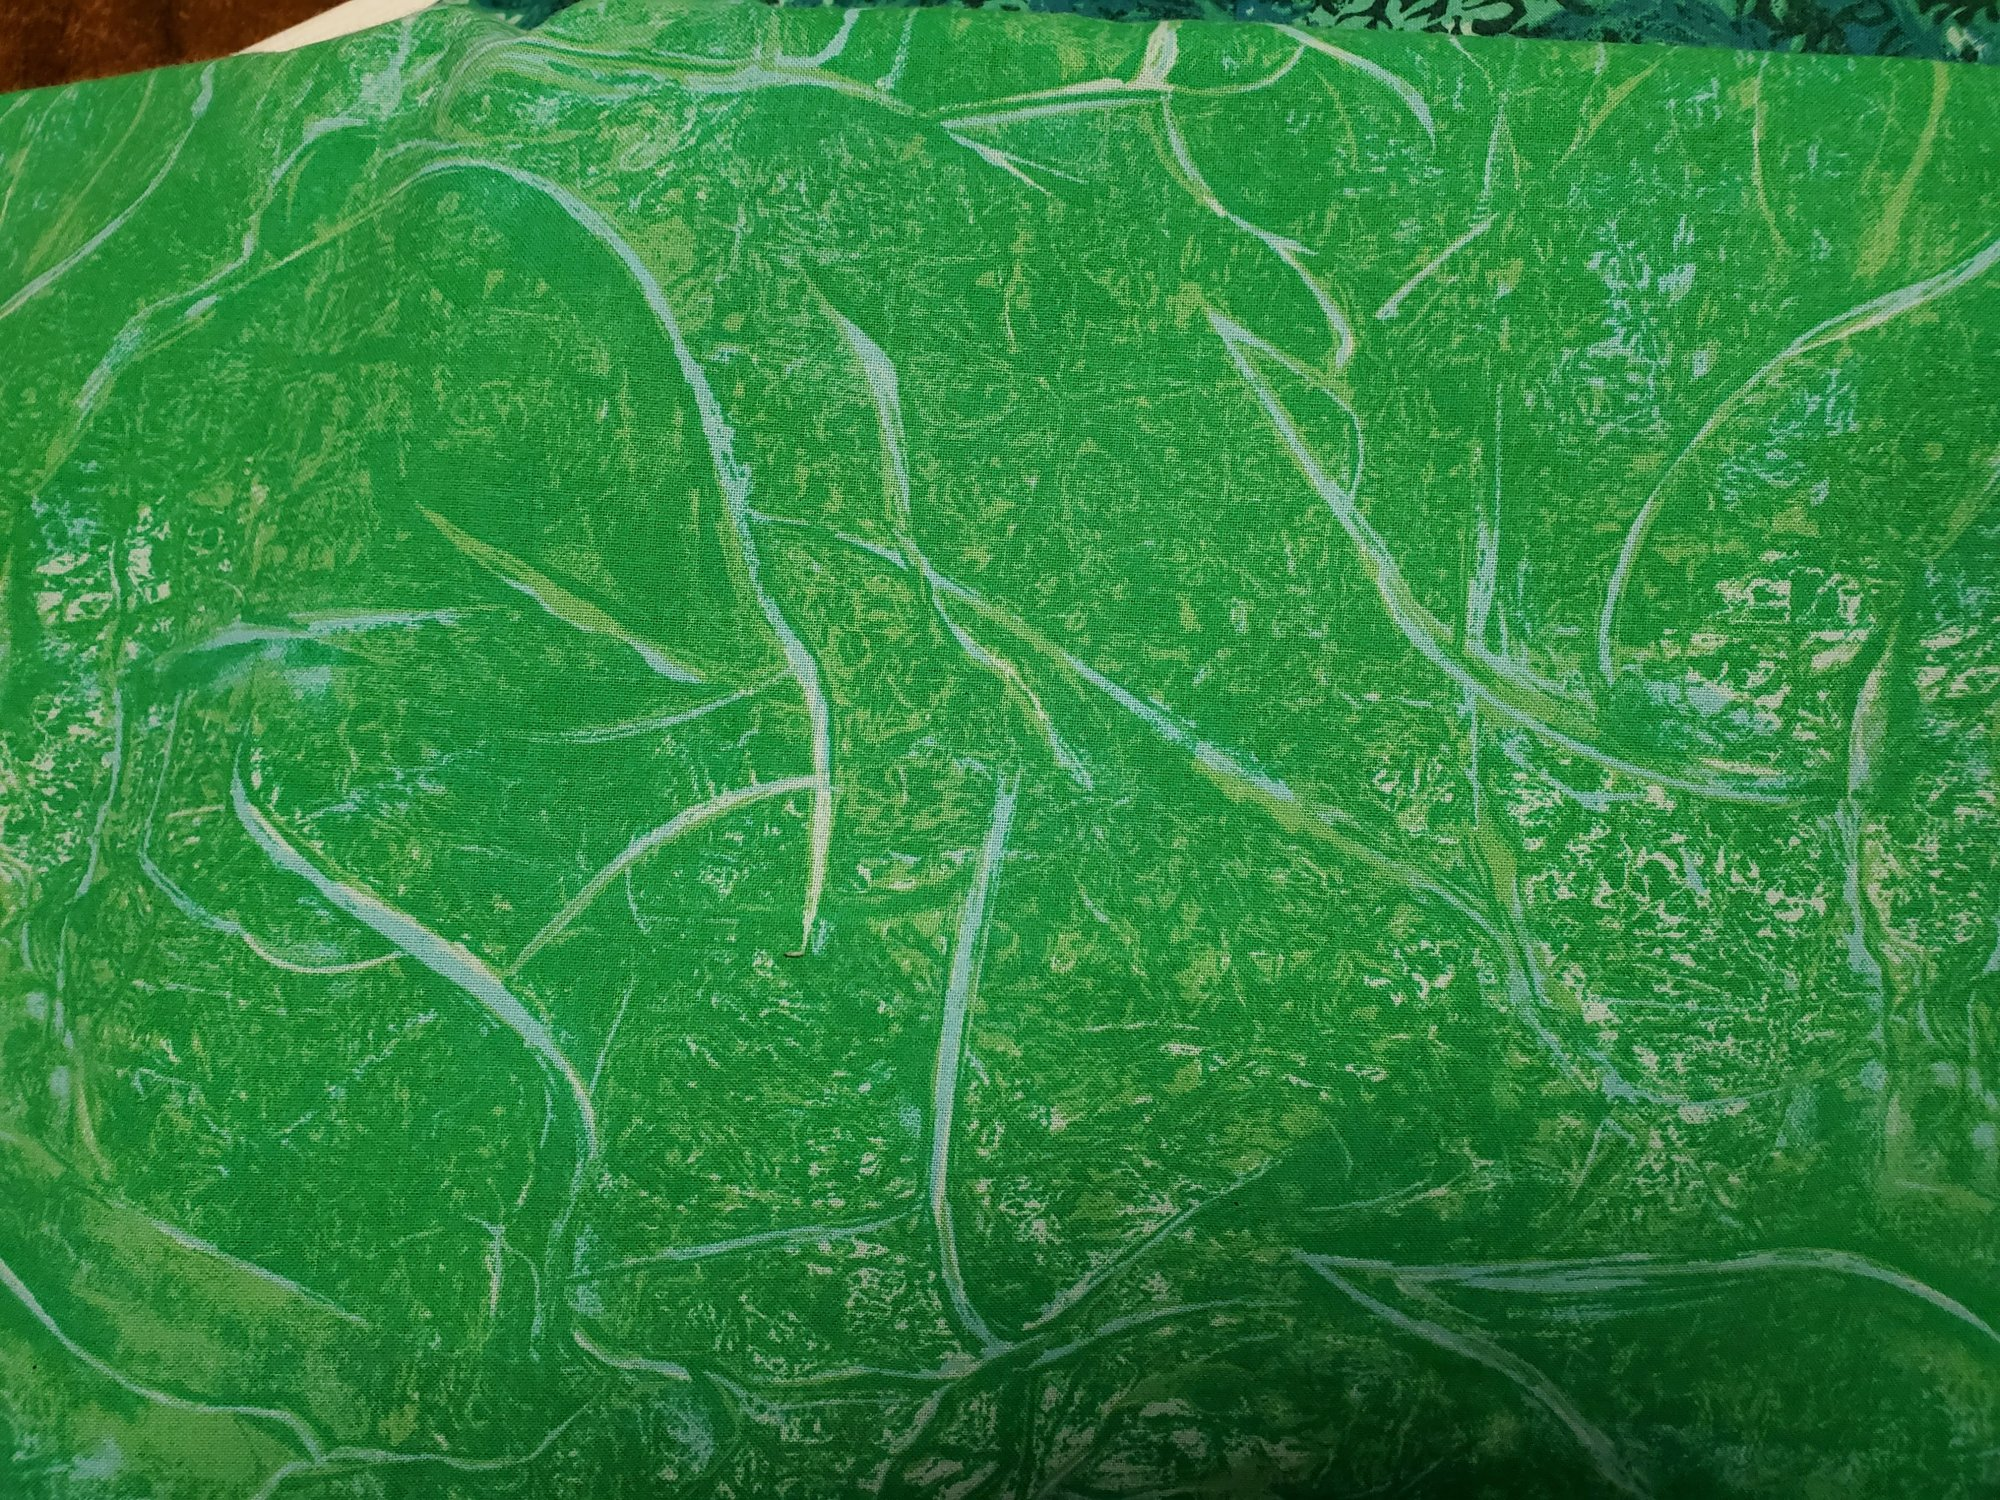 3 Yard Backing Piece: 108 Wide Kelly Green Branches in the Woods in a single 3 yard piece